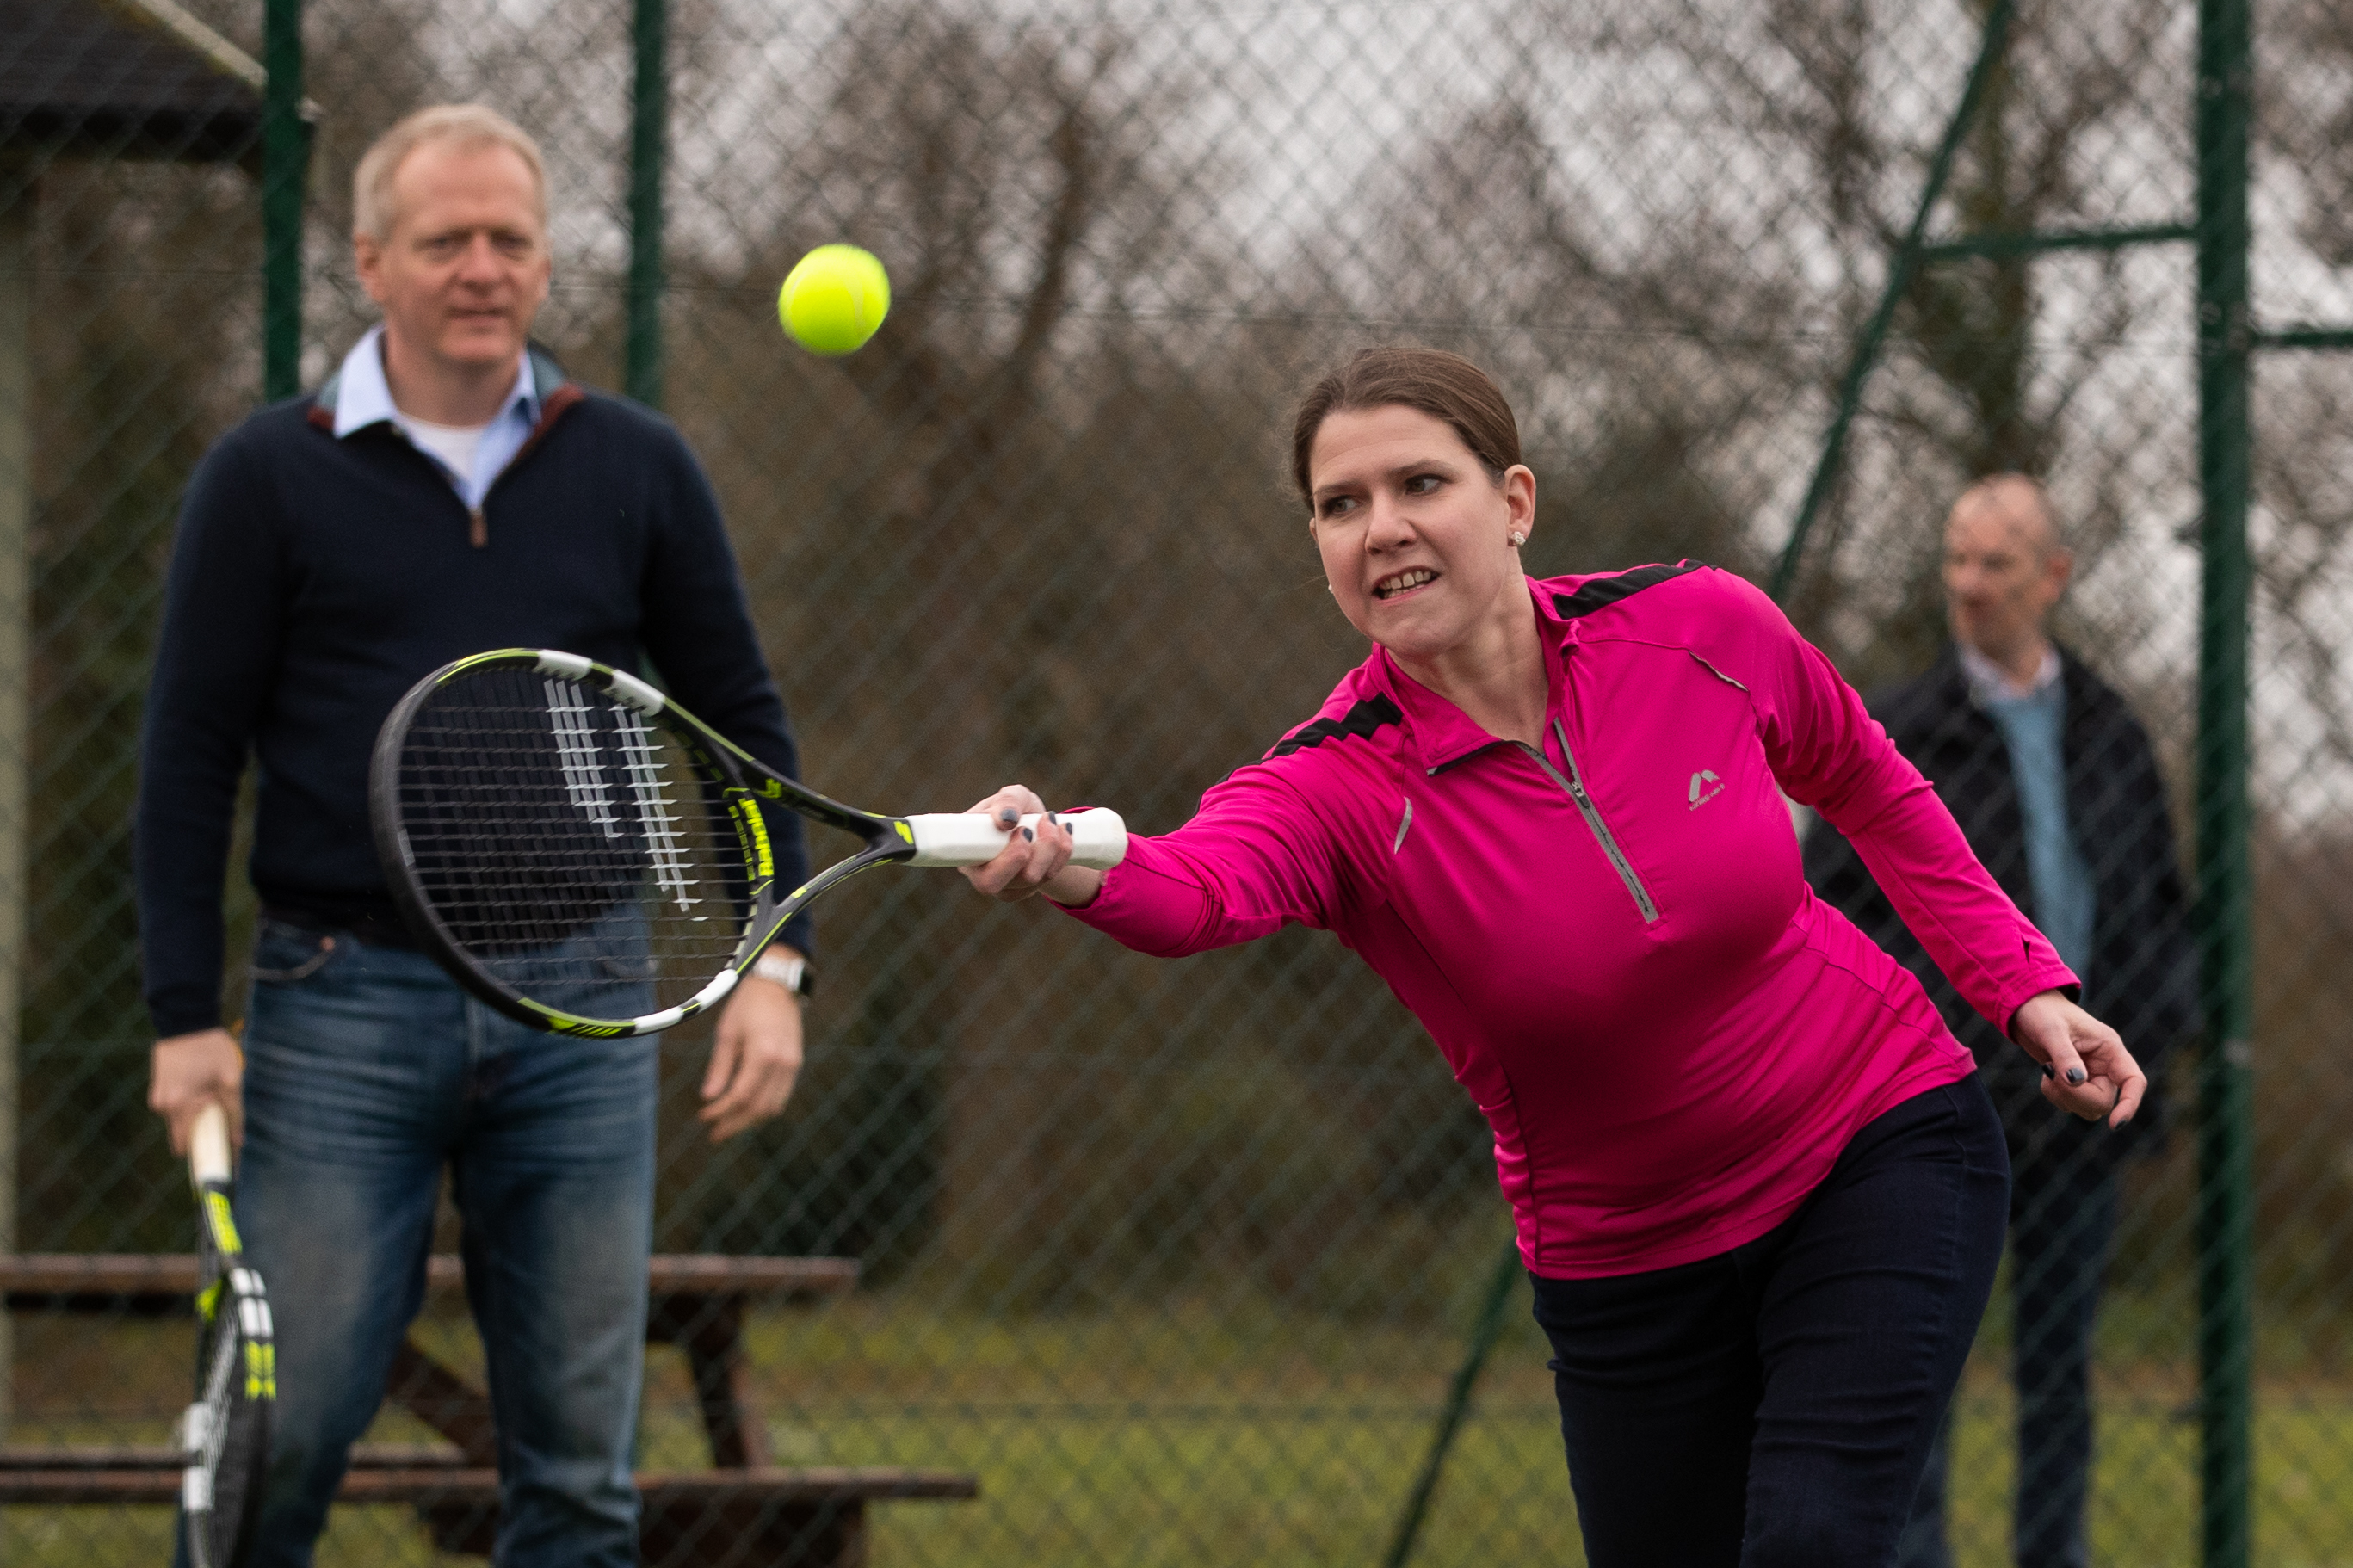 Liberal Democrat Leader Jo Swinson playing tennis as she visits Shinfield Tennis Club, where she will discuss policies aimed at promoting a healthy lifestyle and tackling child obesity, while on the General Election campaign trail.